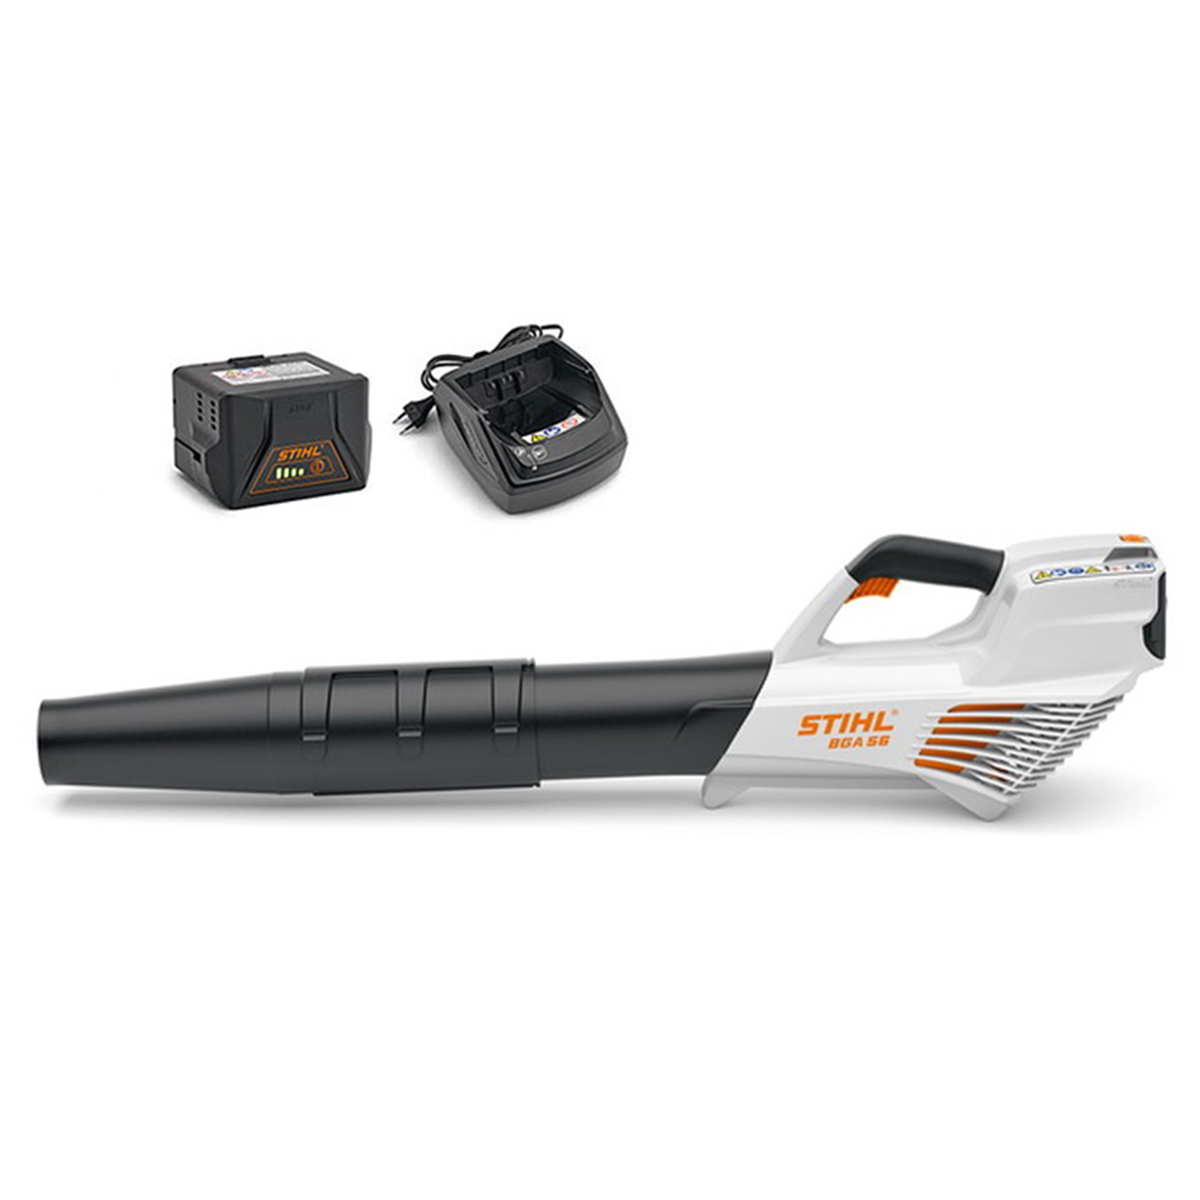 Stihl BGA56 36V Cordless Handheld Blower (Battery & Charger Included)